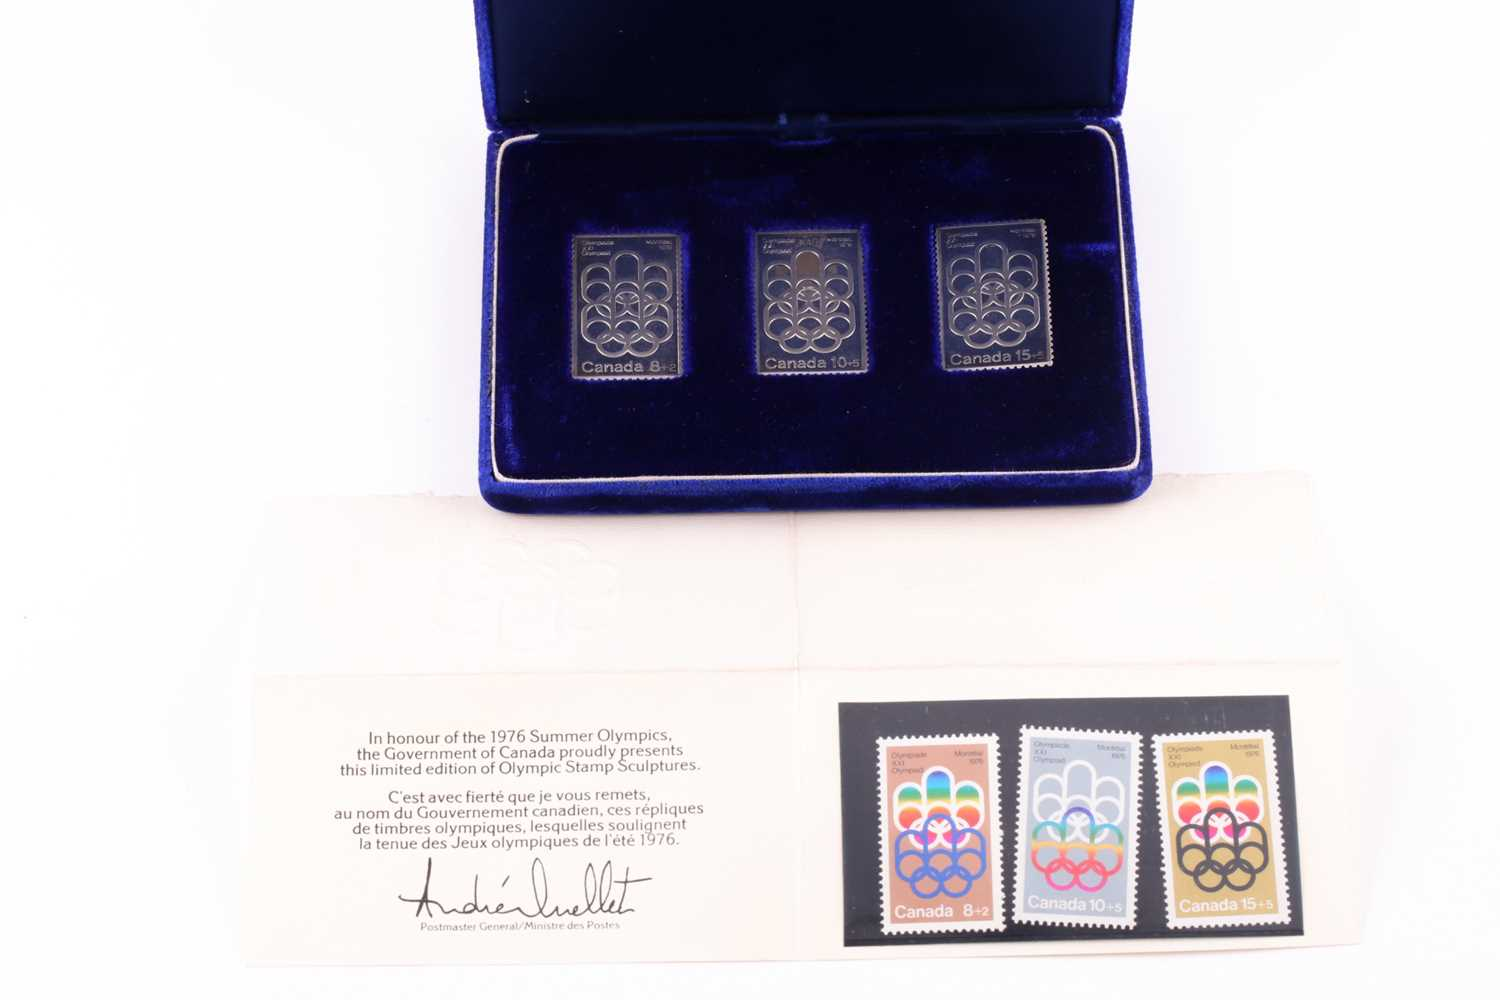 A cased set of three silver ingots, designed as stamps, in honour of the 1976 Summer Olympics,